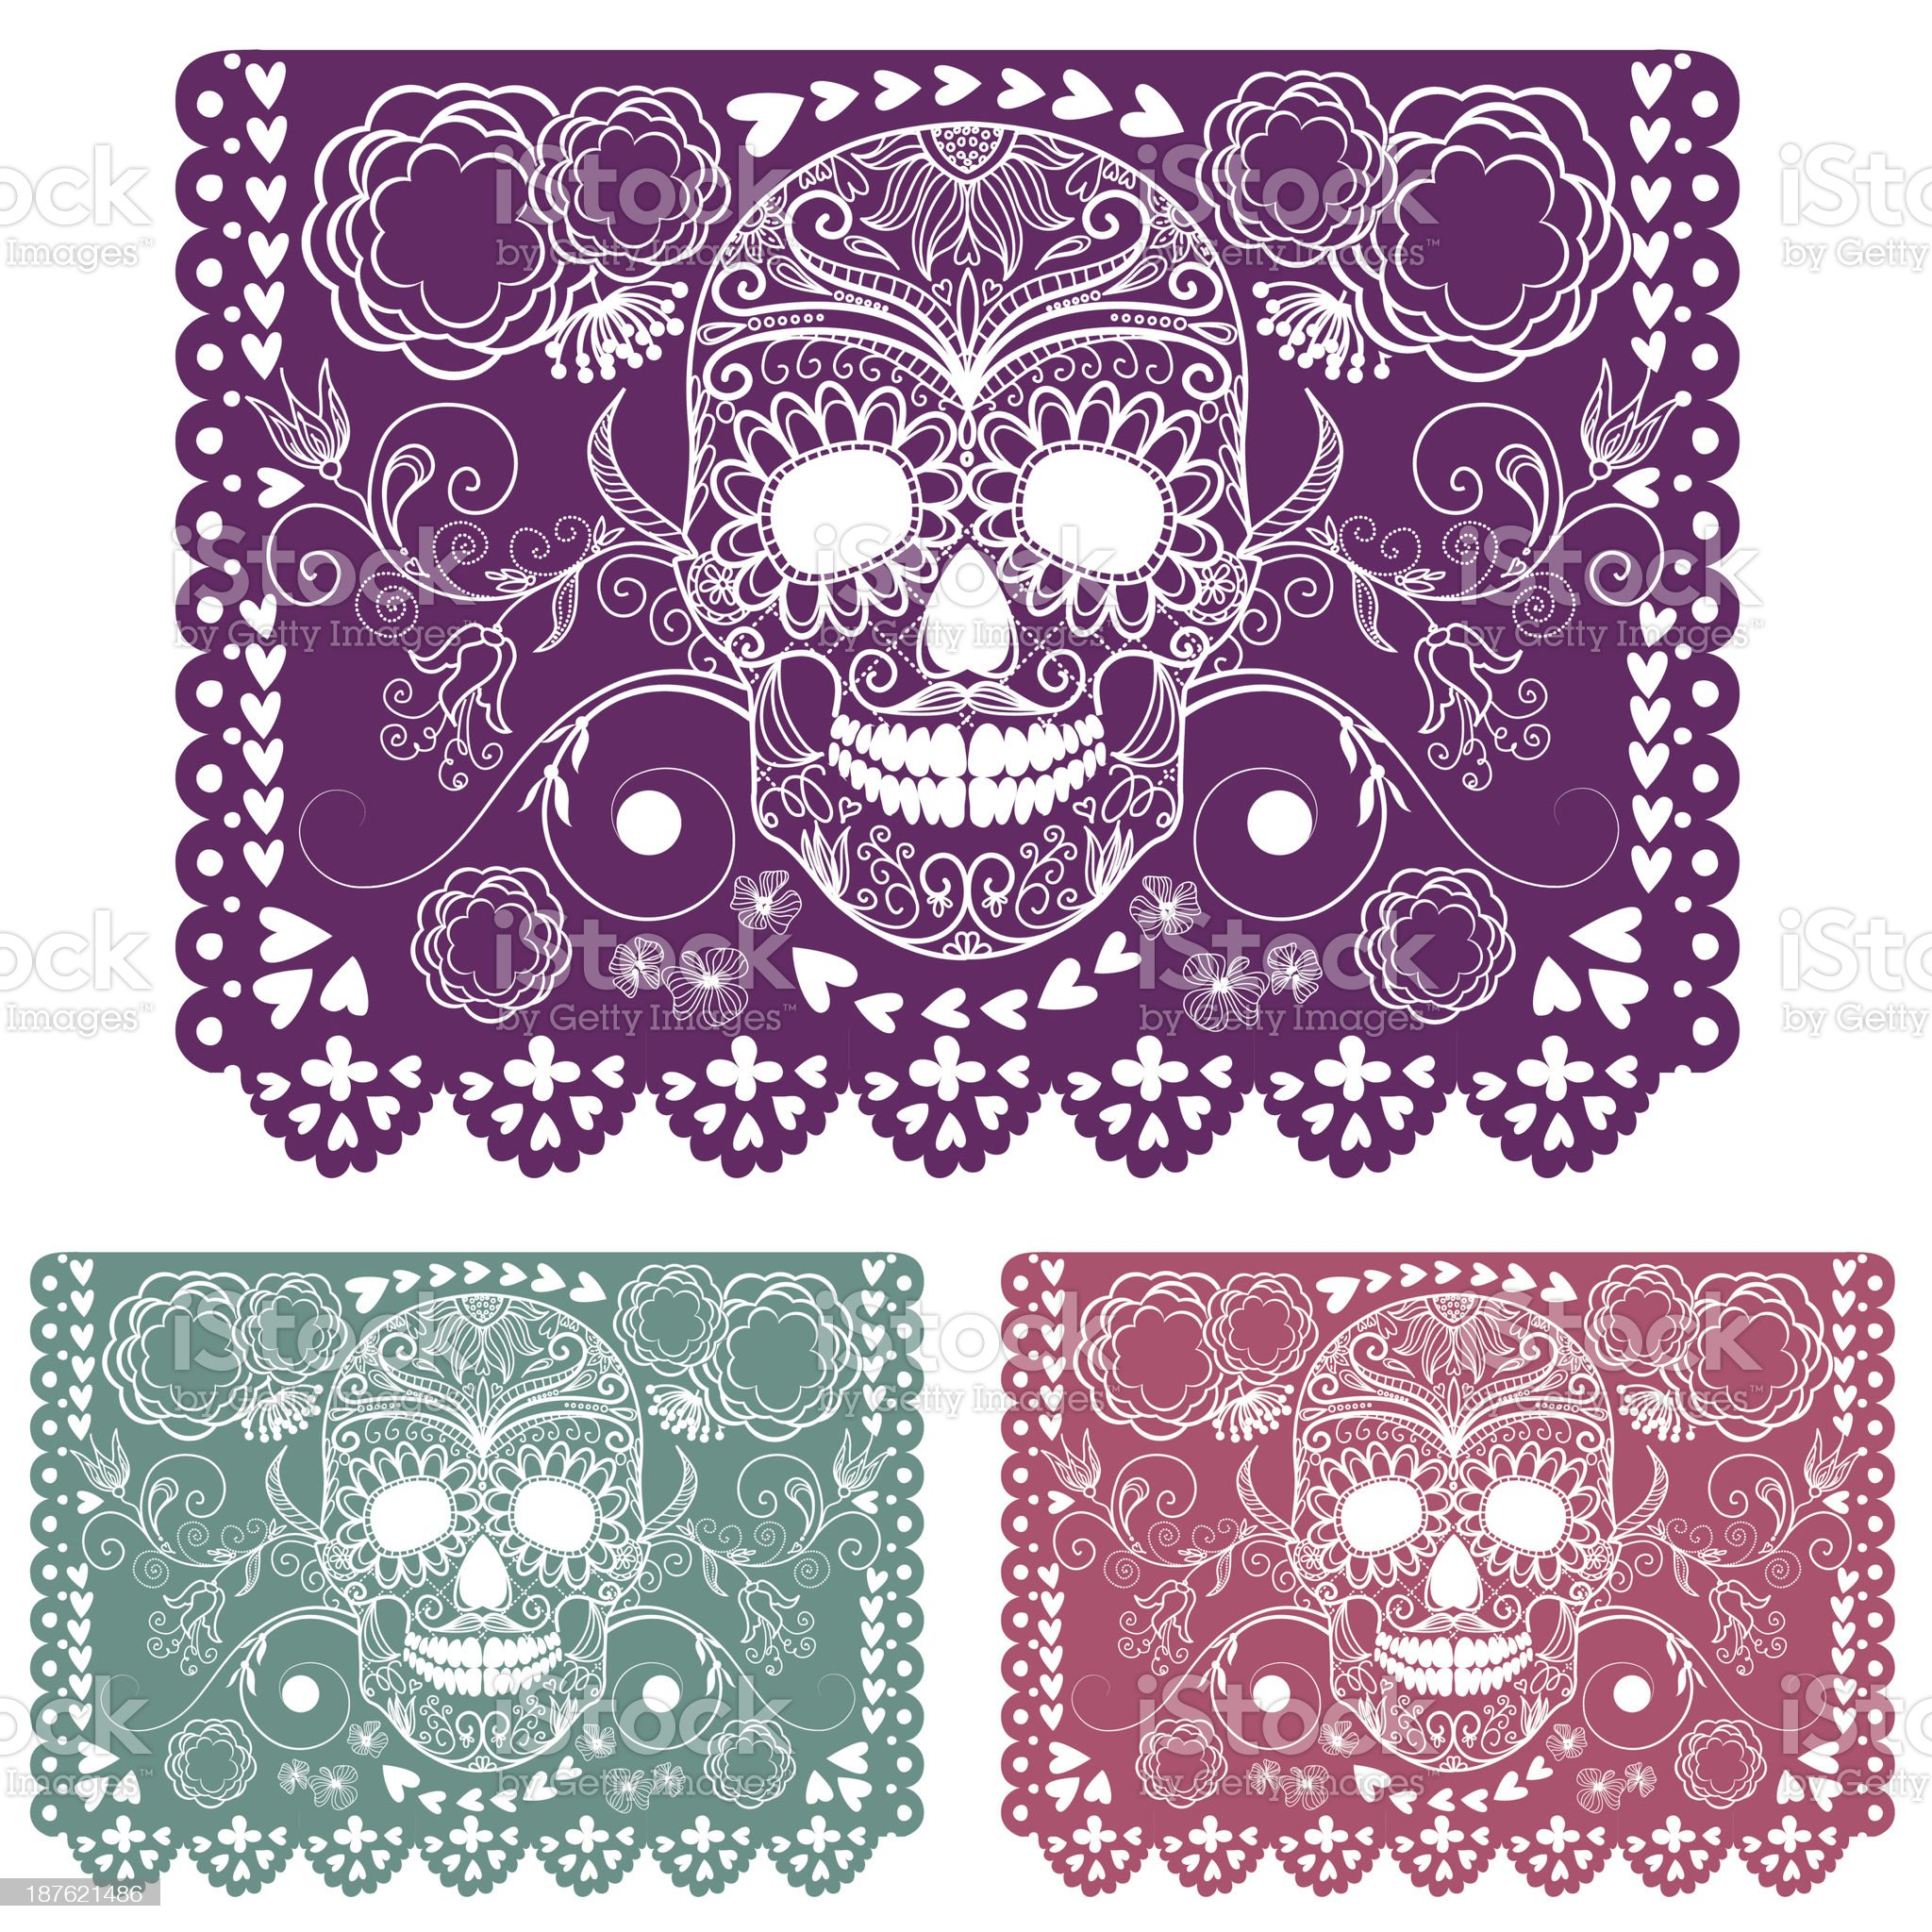 Day of the dead decoration. royalty-free stock vector art